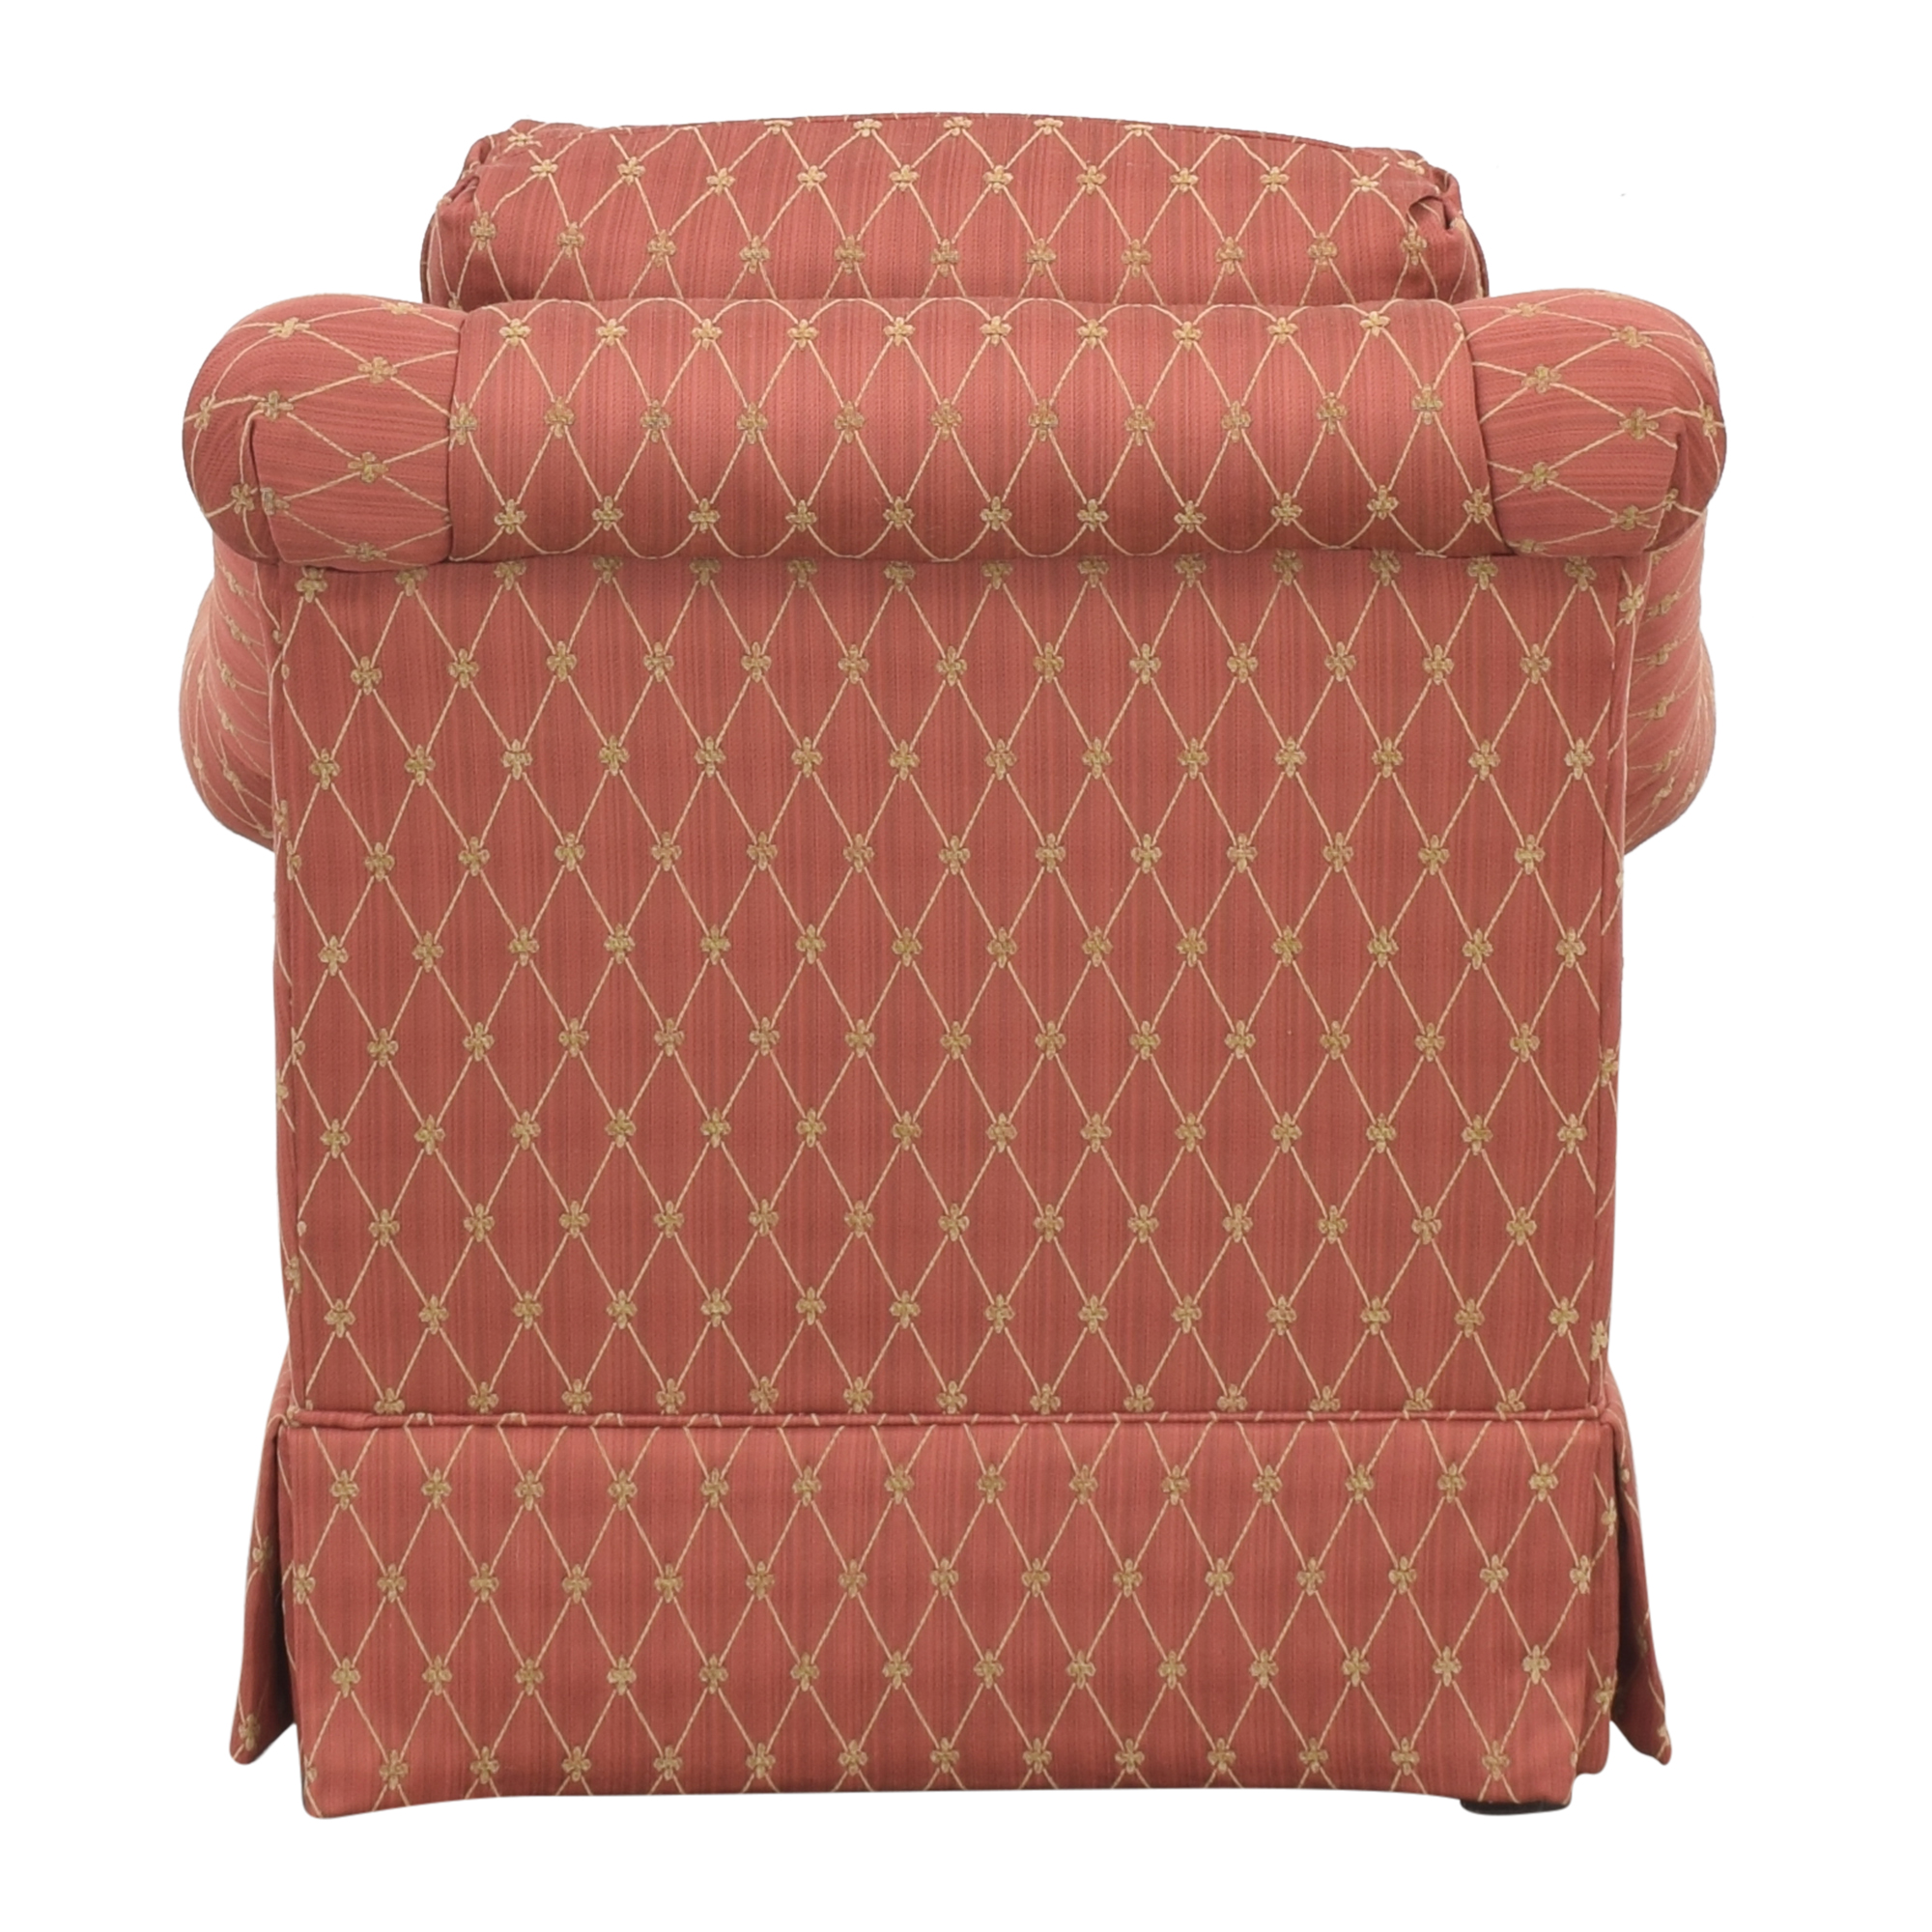 Clayton Marcus Clayton Marcus Accent Chair dimensions